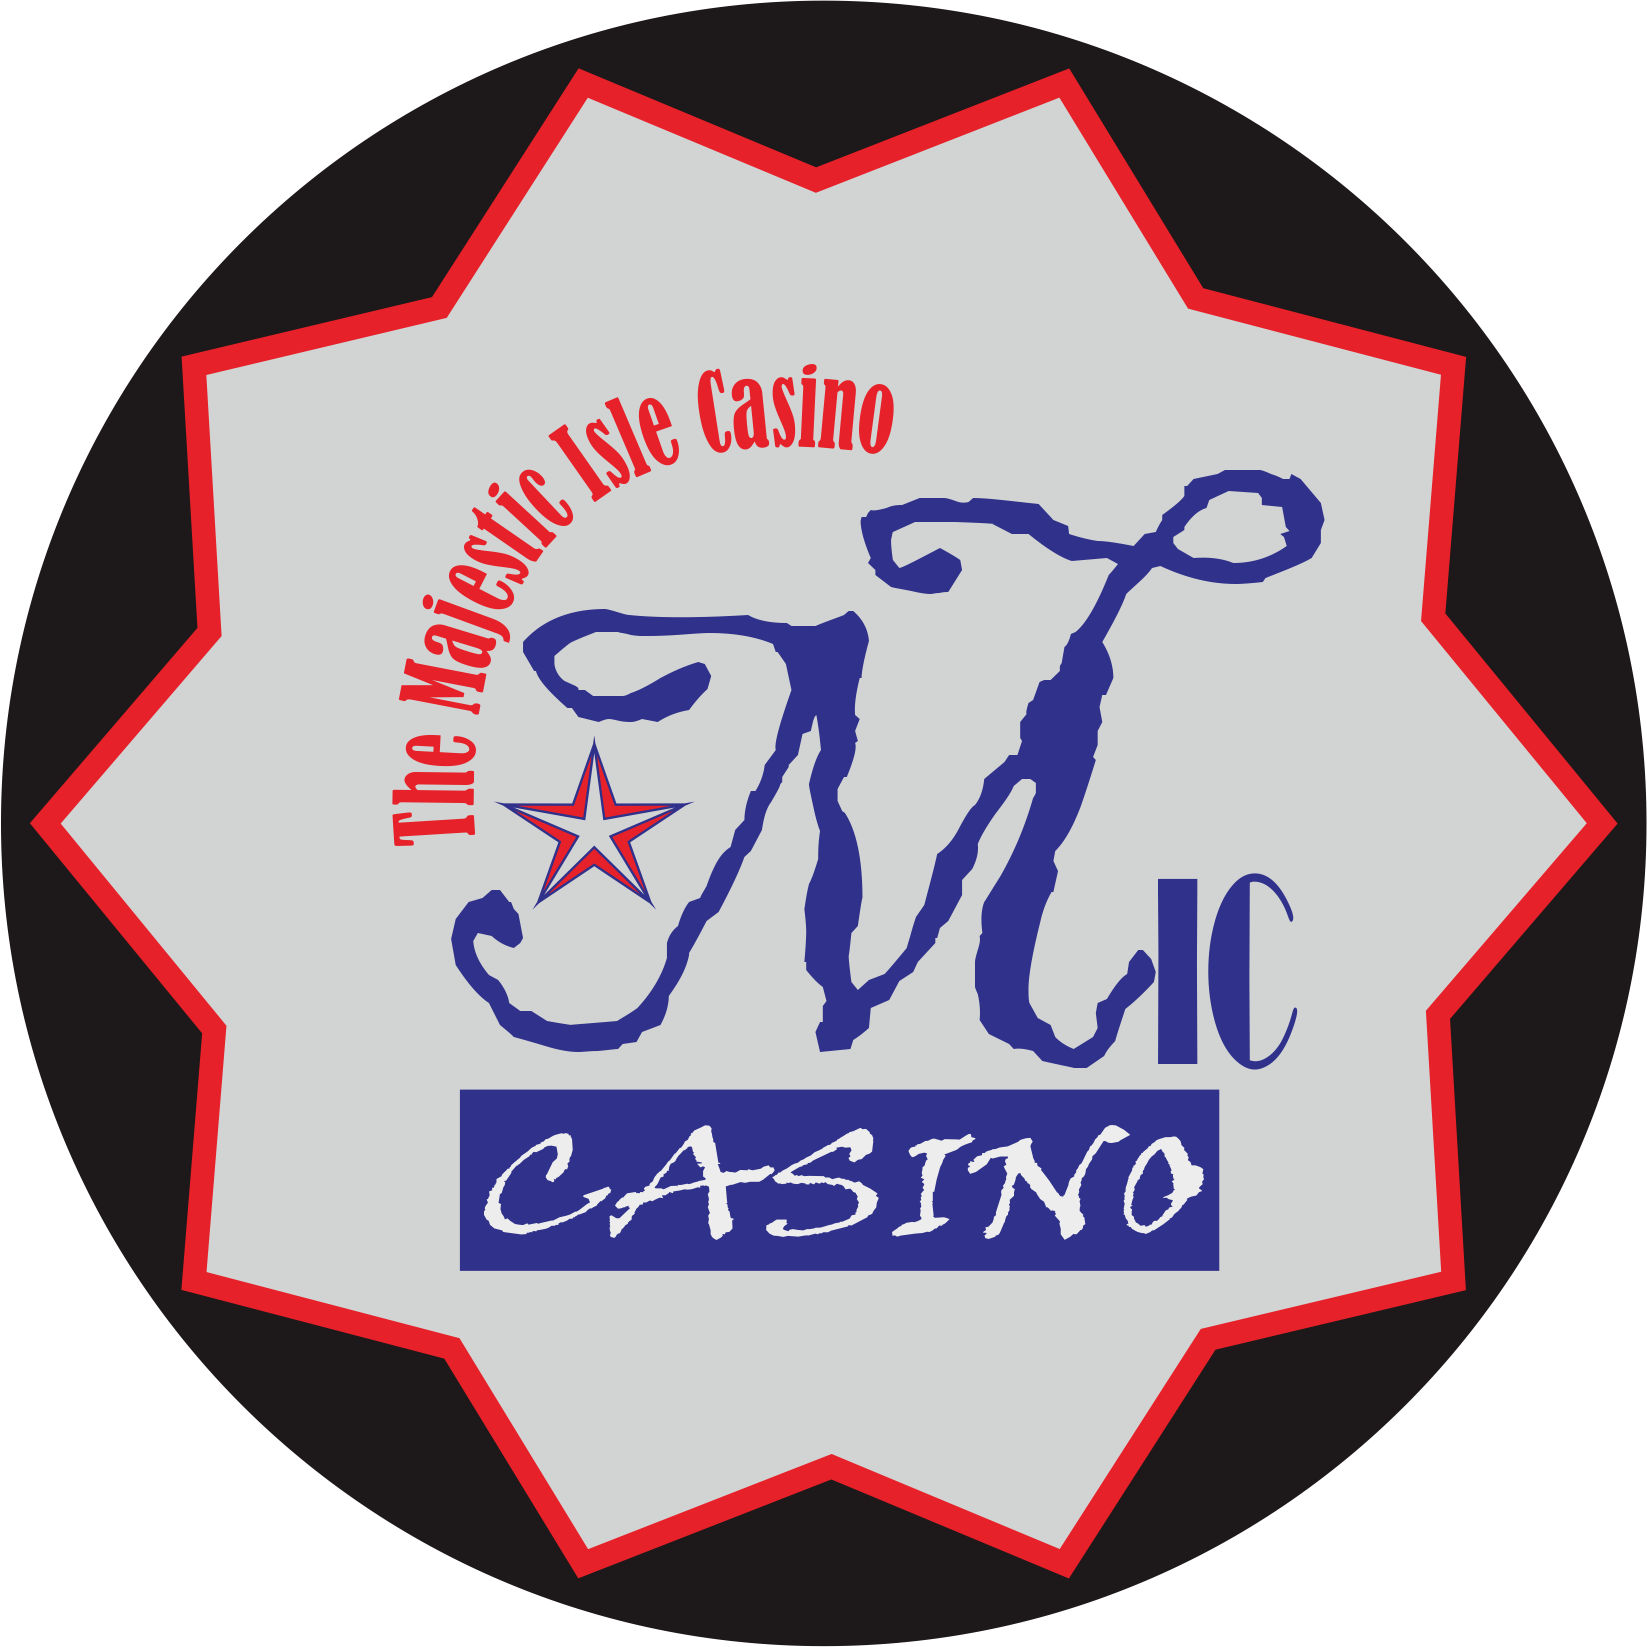 Logo Design by Teguh Hanuraga - Entry No. 23 in the Logo Design Contest New Logo Design for The Majestic Isle Casino.